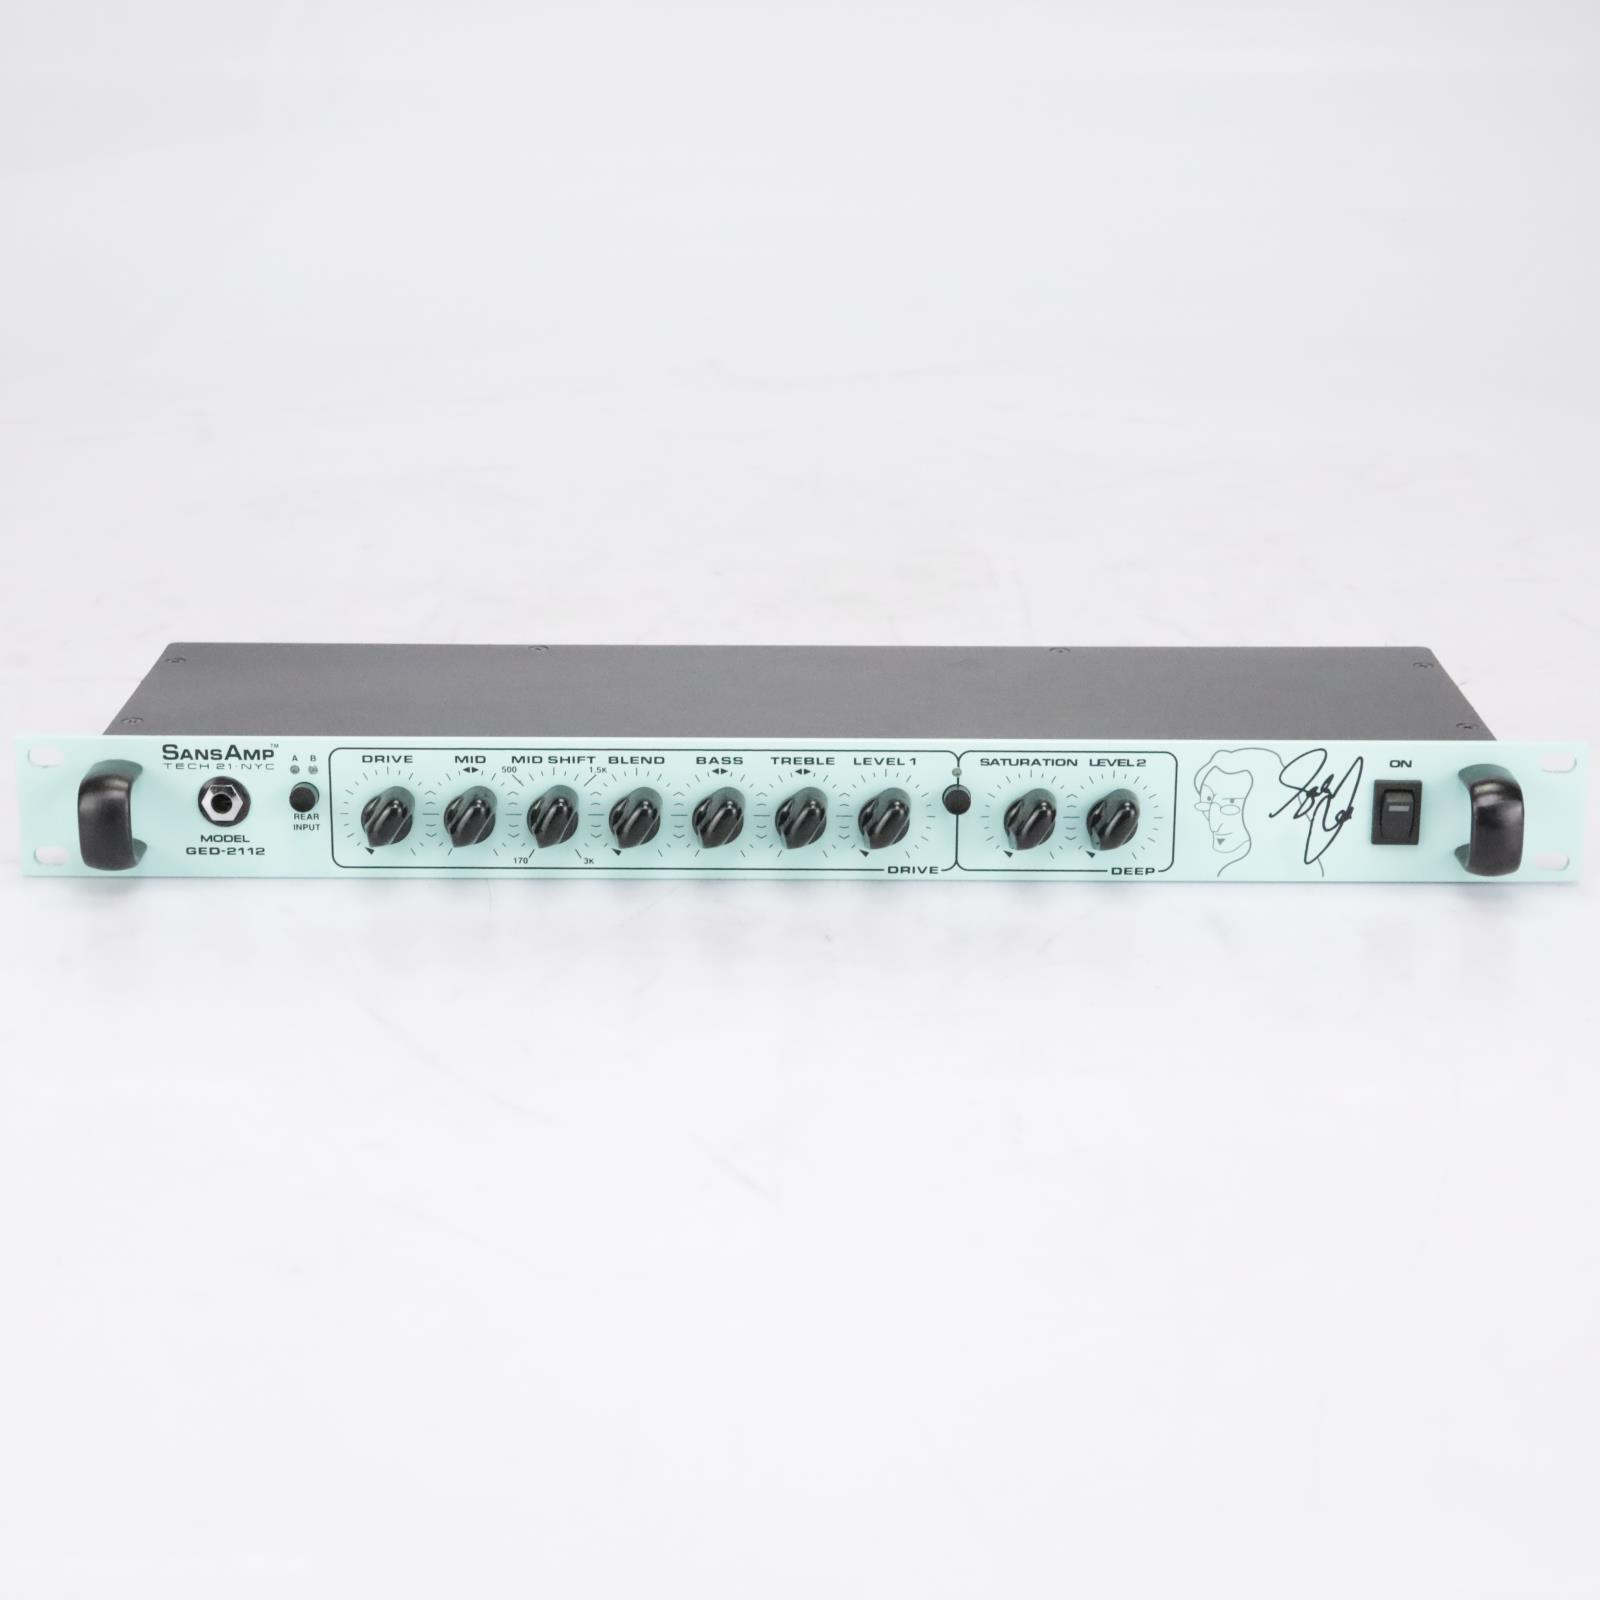 Tech 21 GED-2112 SansAmp  Rackmount Bass Preamp #42362